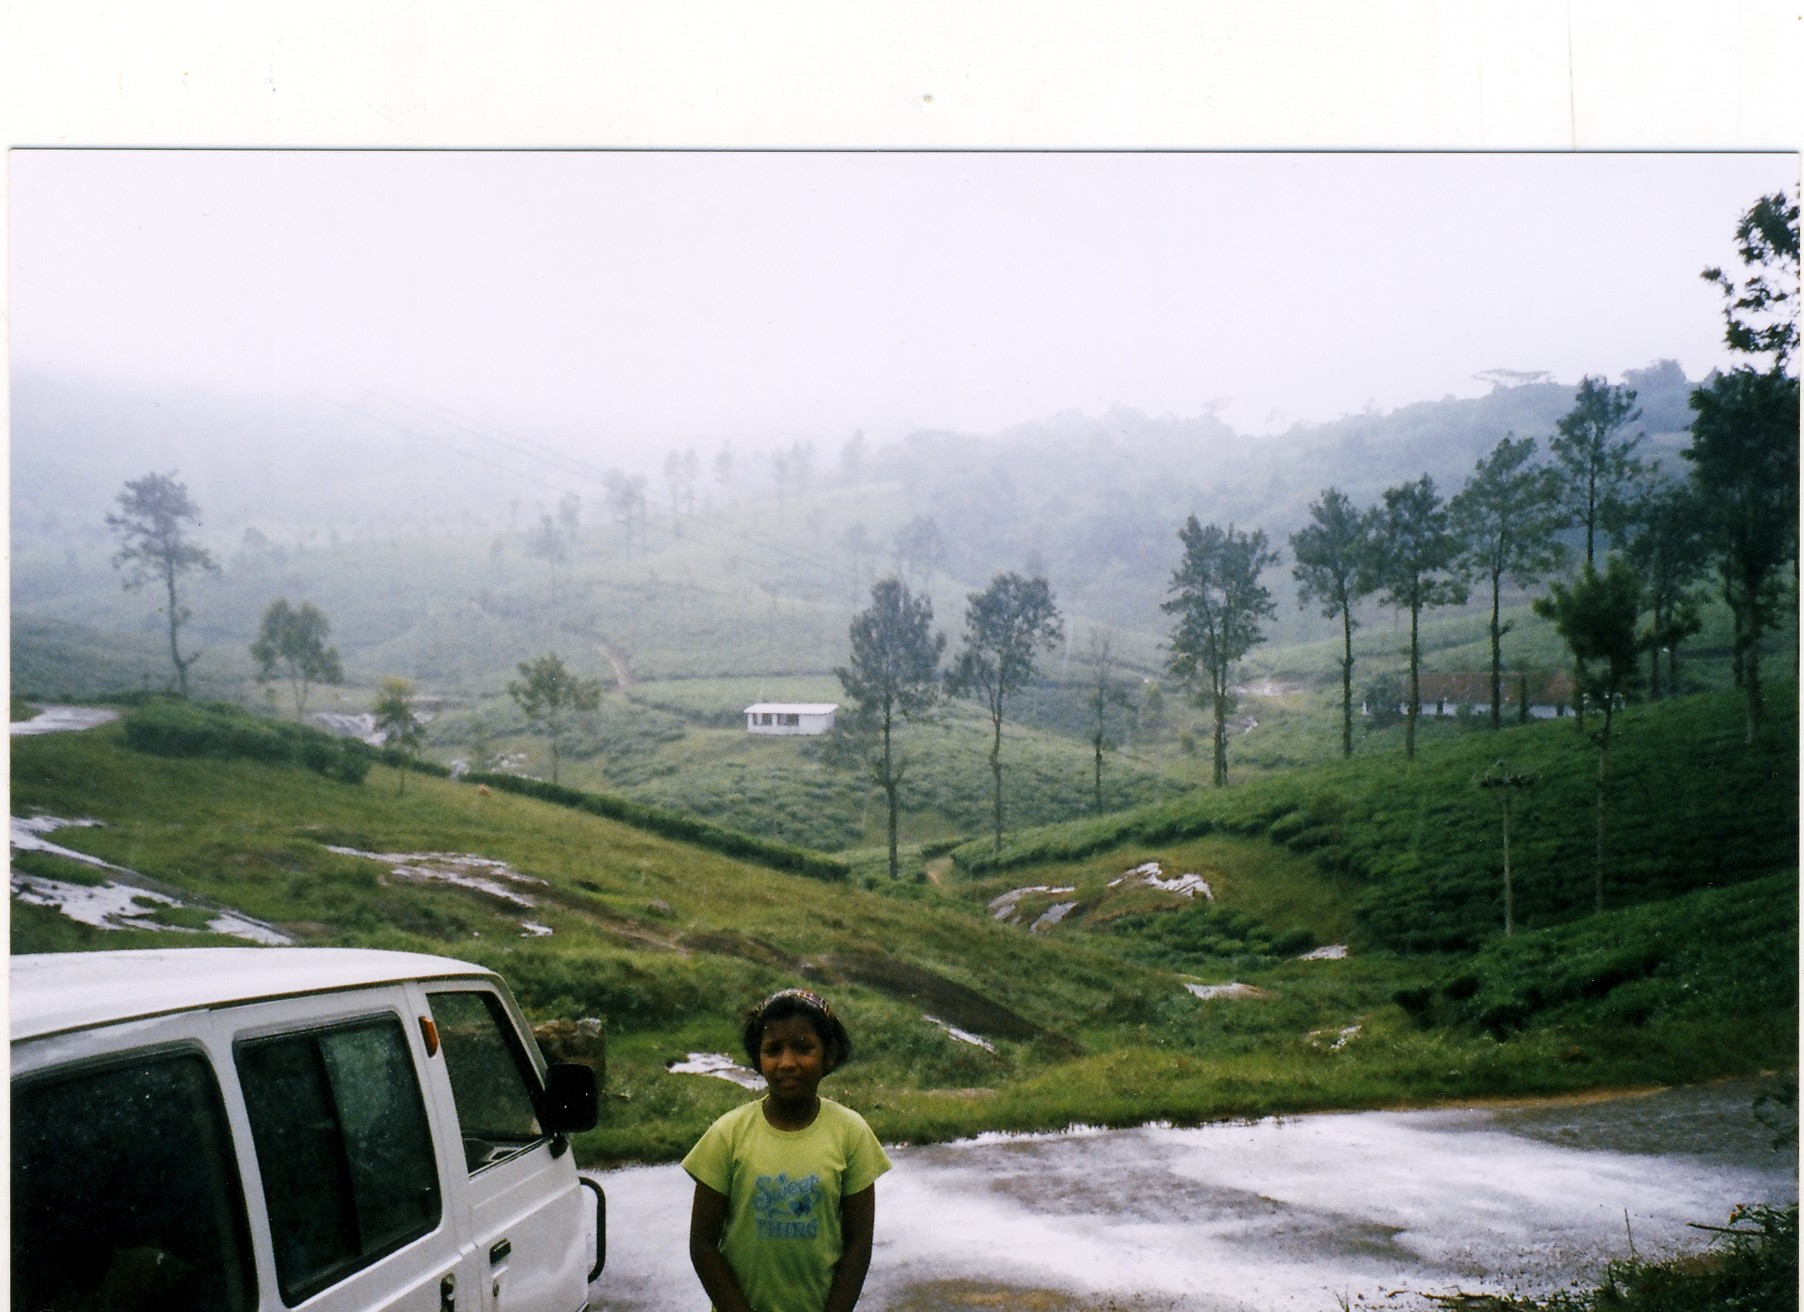 Drizzling in tea garden